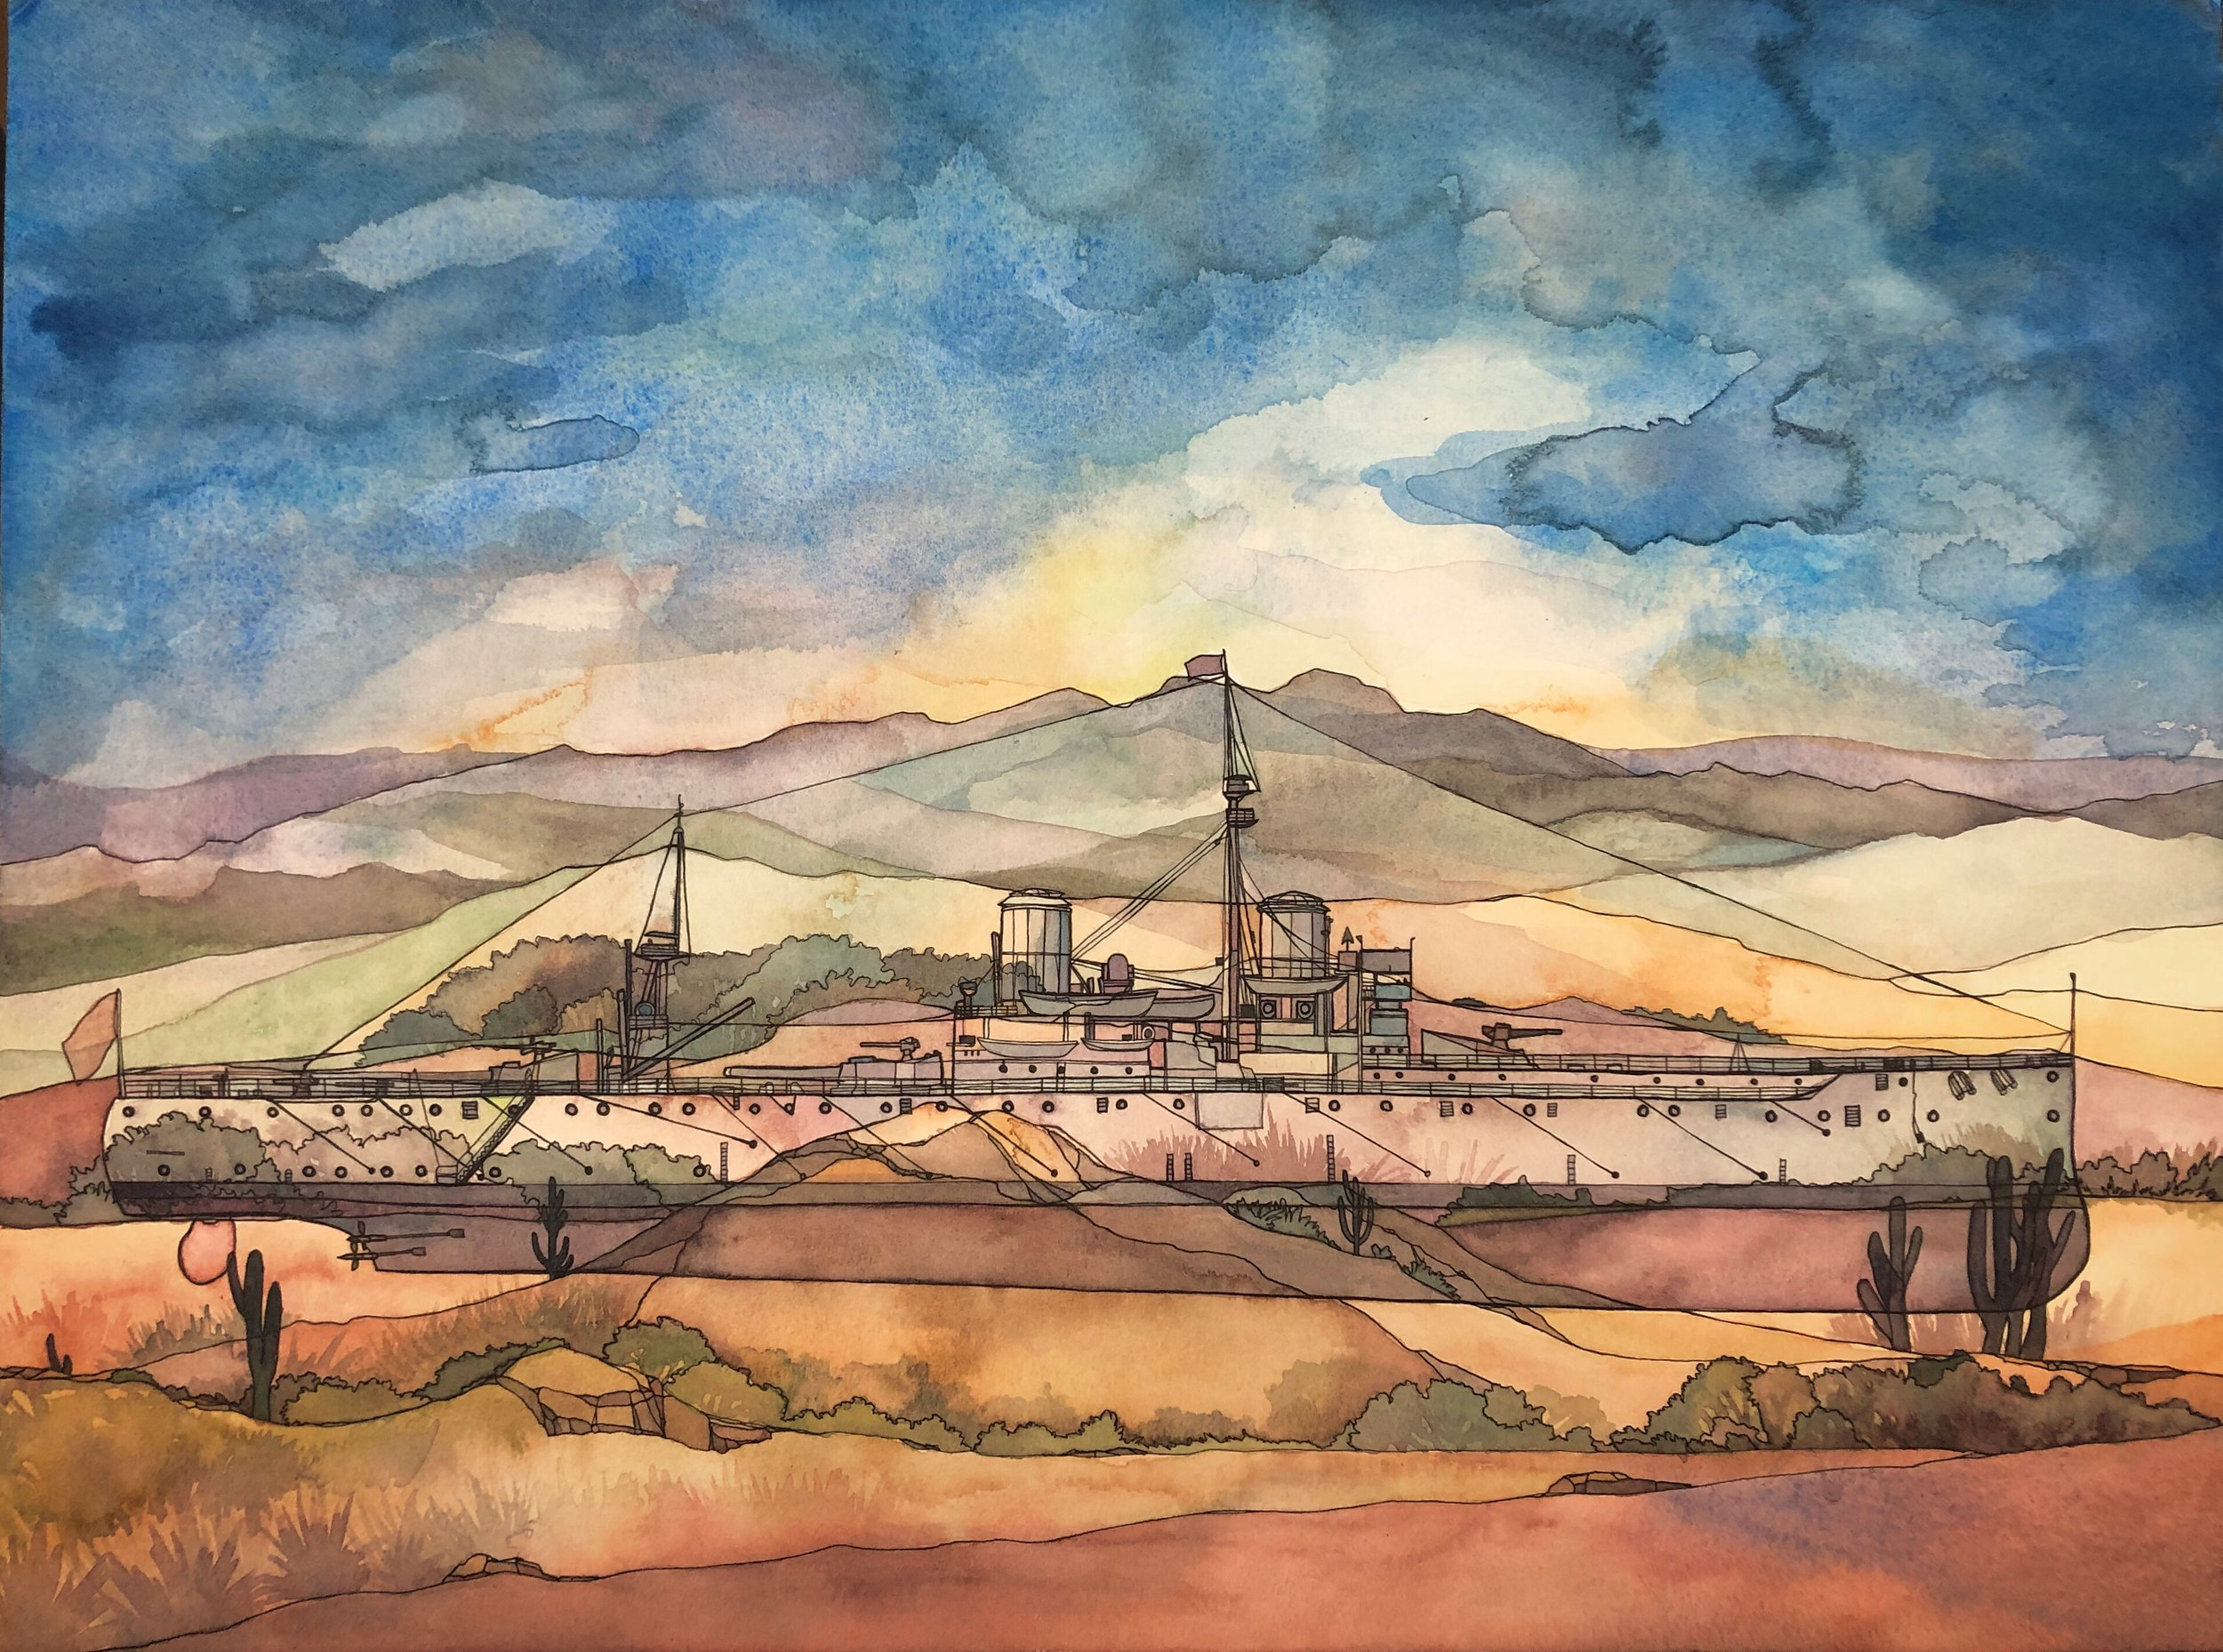 Desert Dreadnought, ink and watercolor on paper.